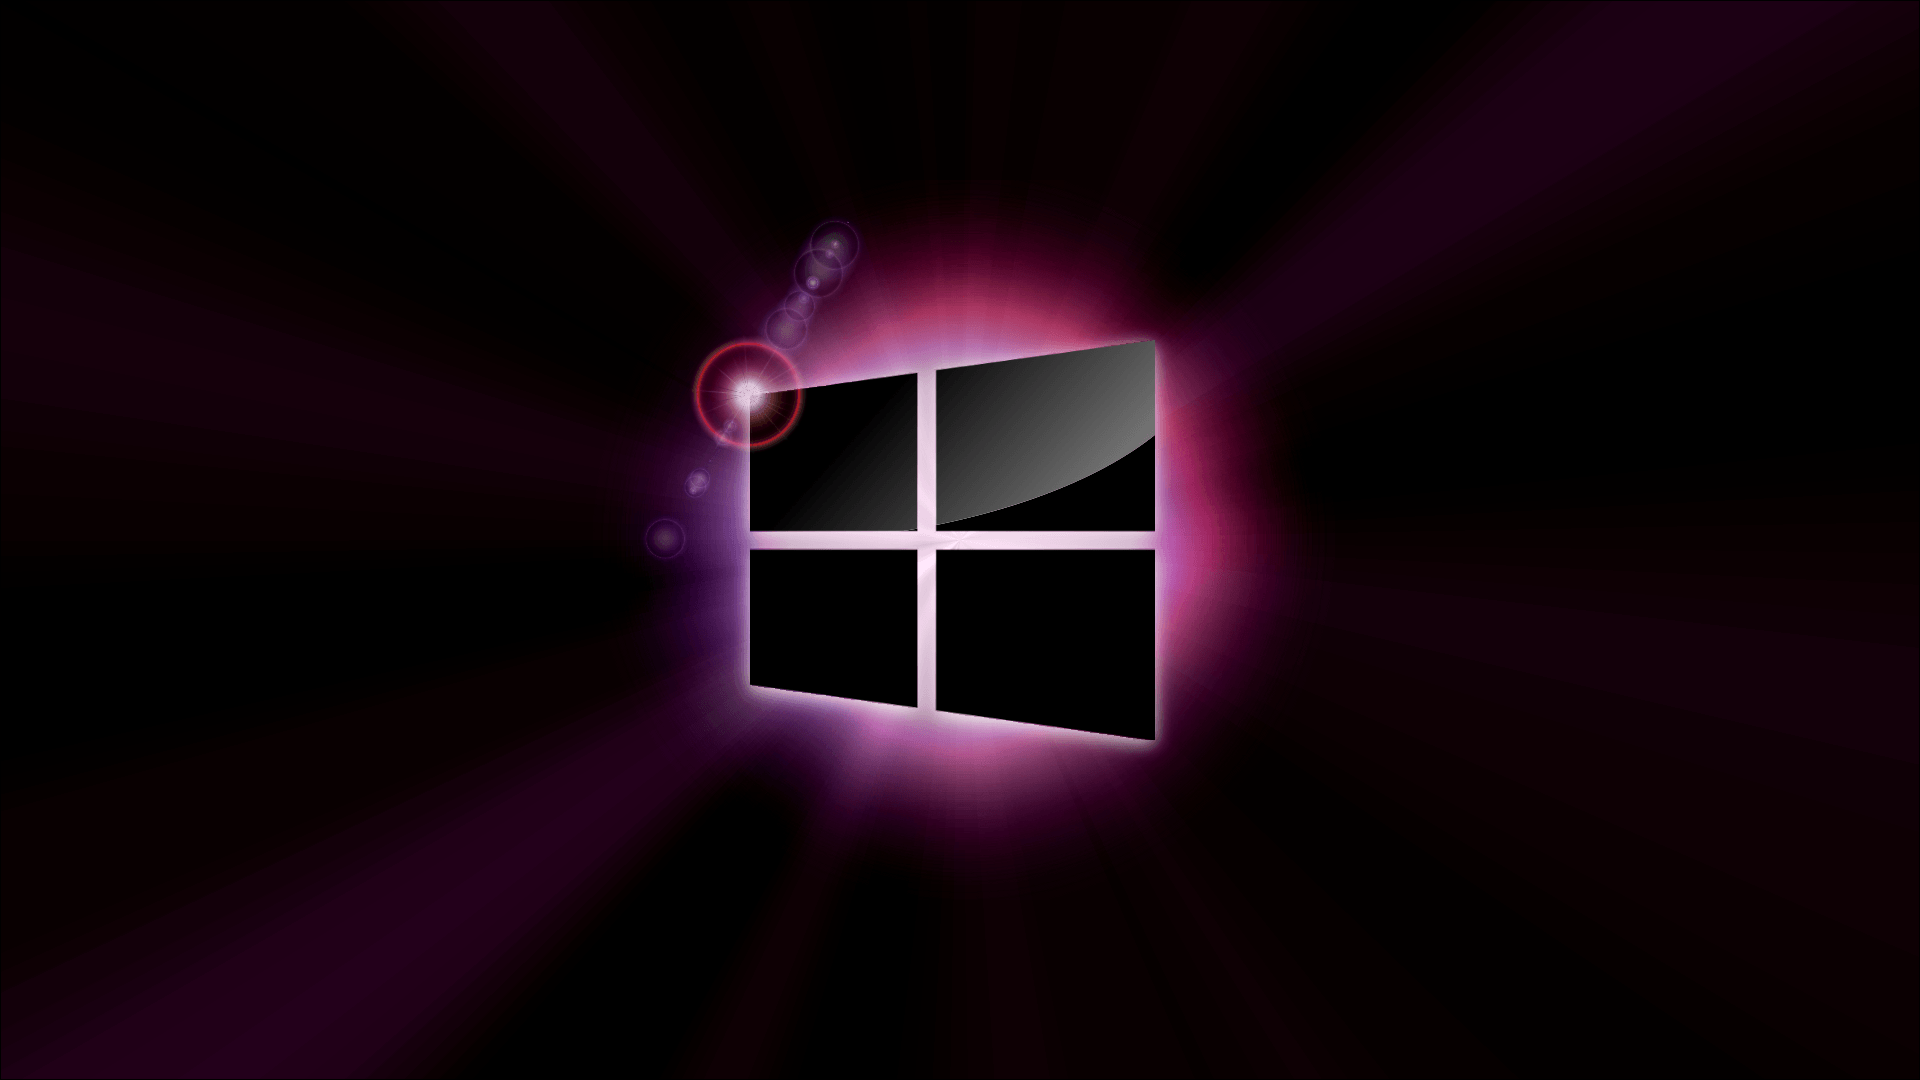 Windows 8 wallpapers high quality wallpaper cave for Screen new window